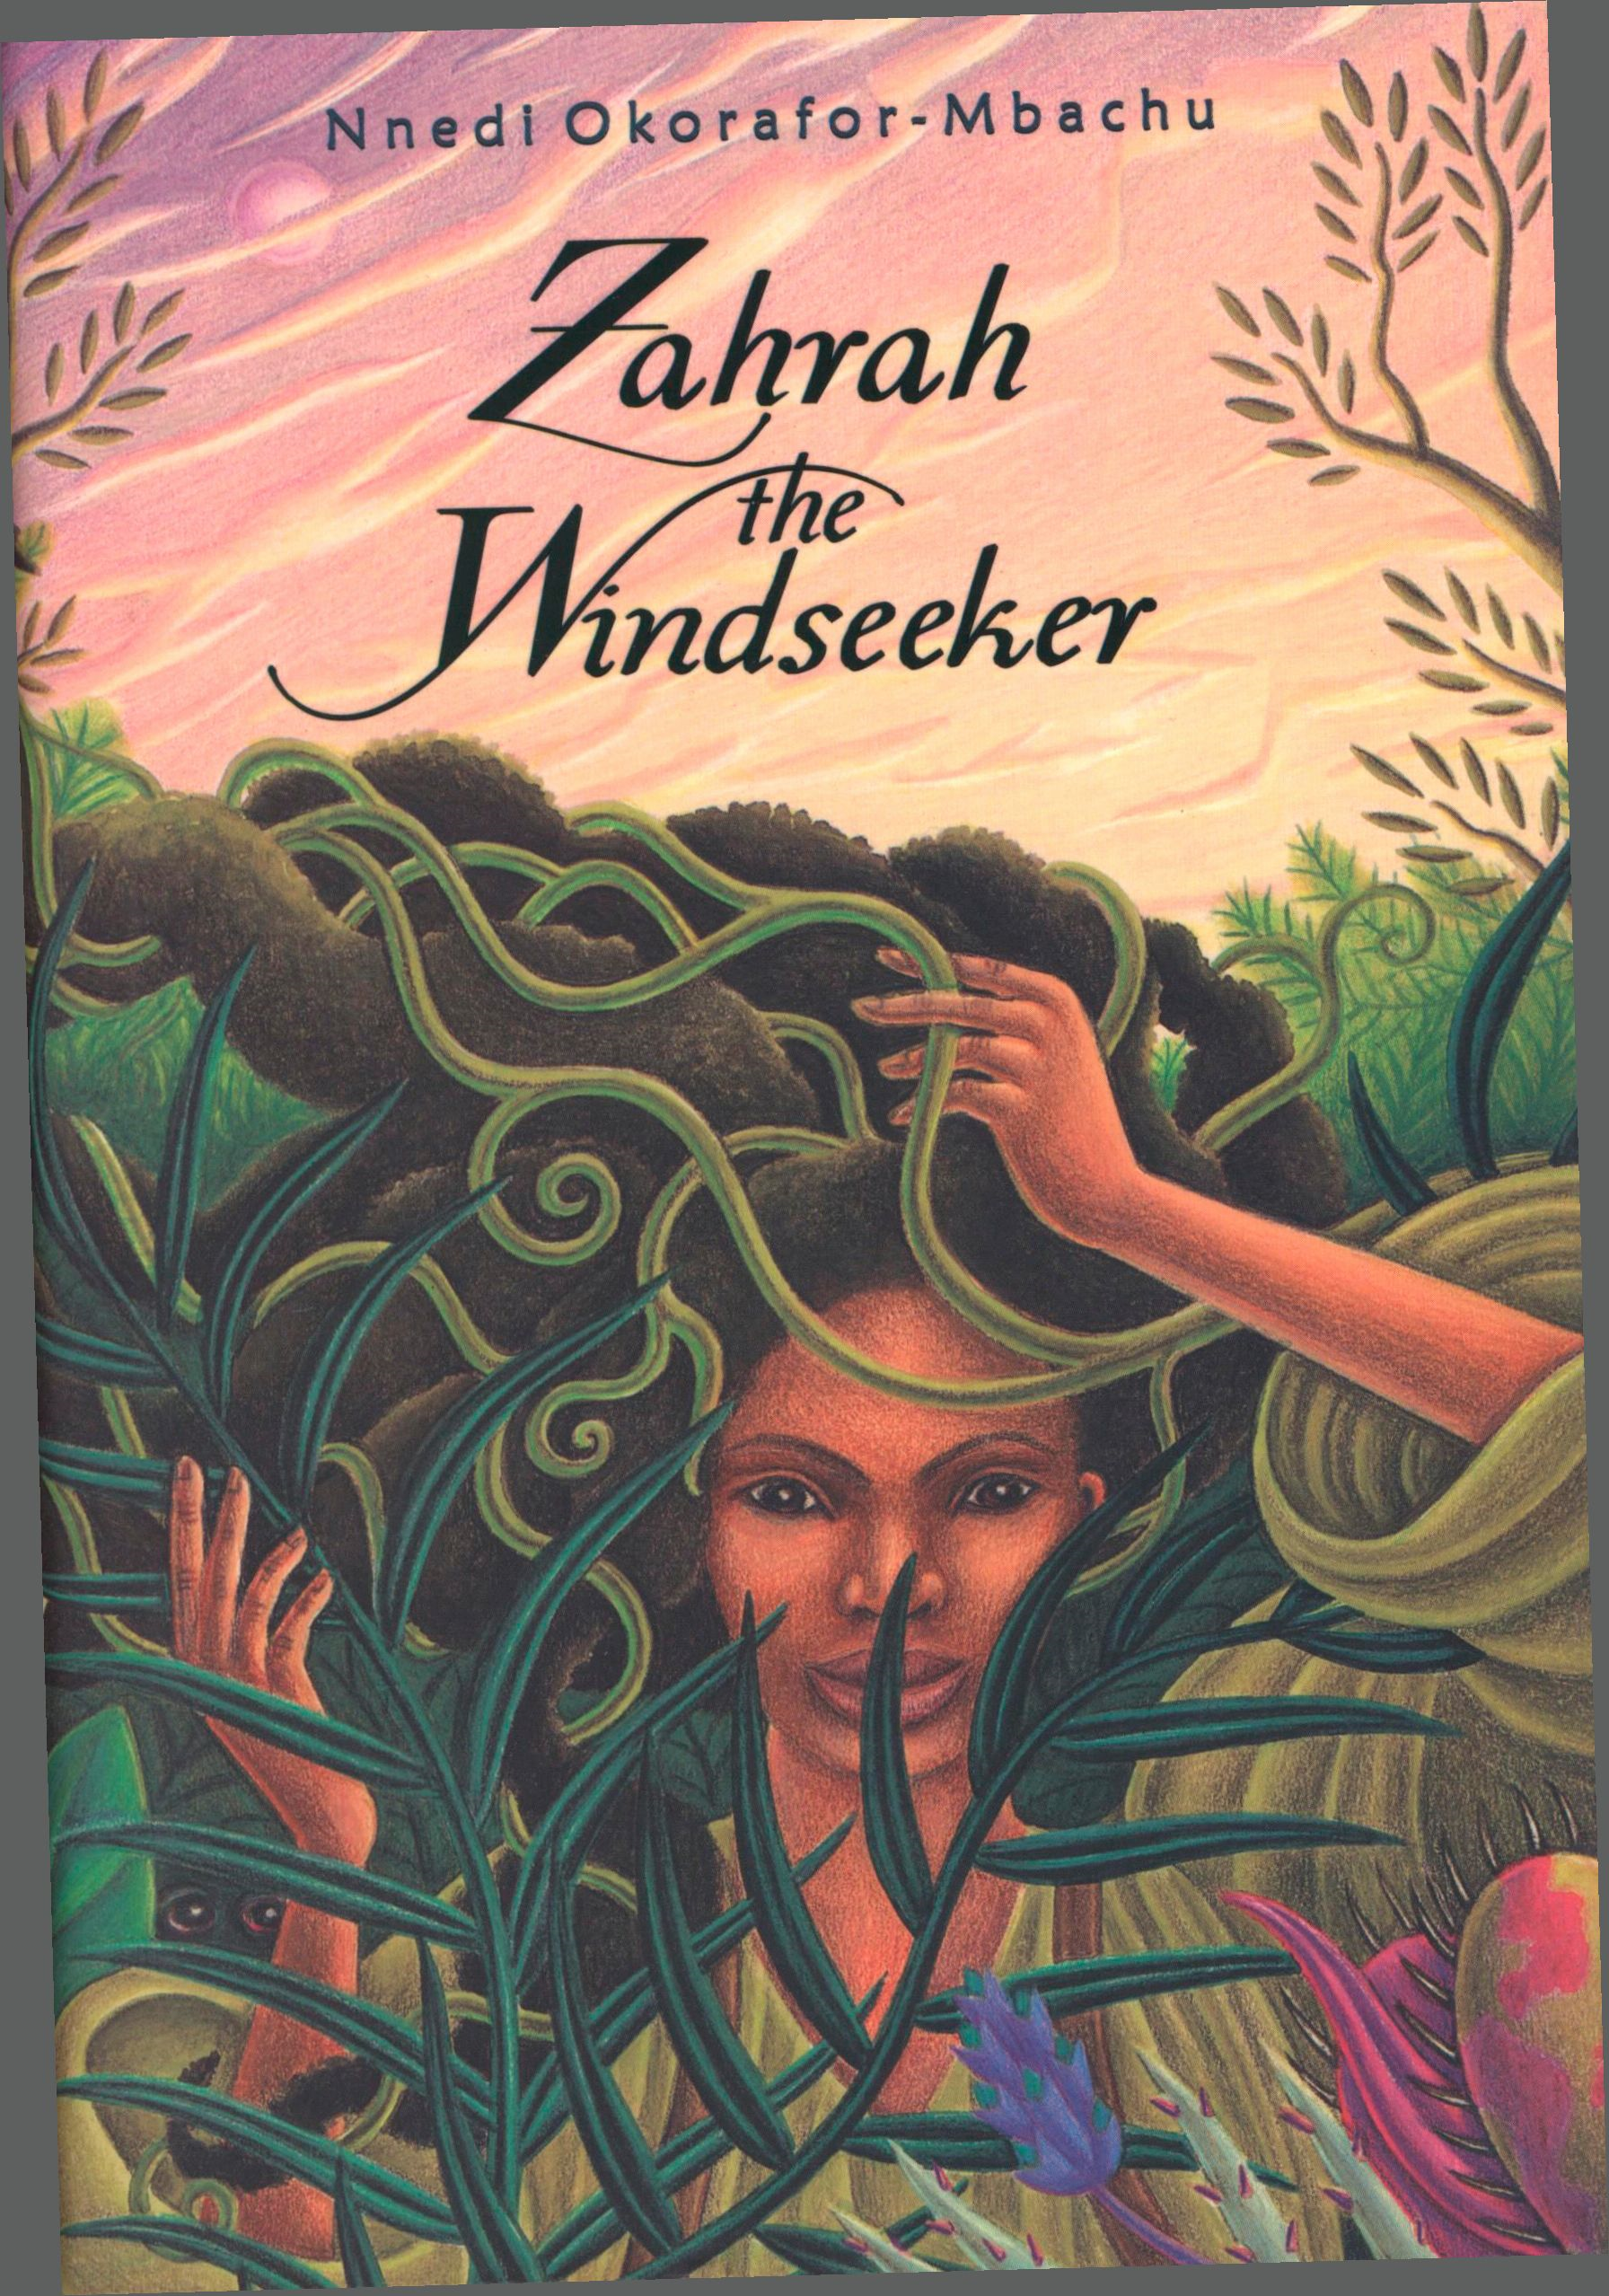 Zahrah the Windseeker By: Nnedi Okorafor-Mbachu